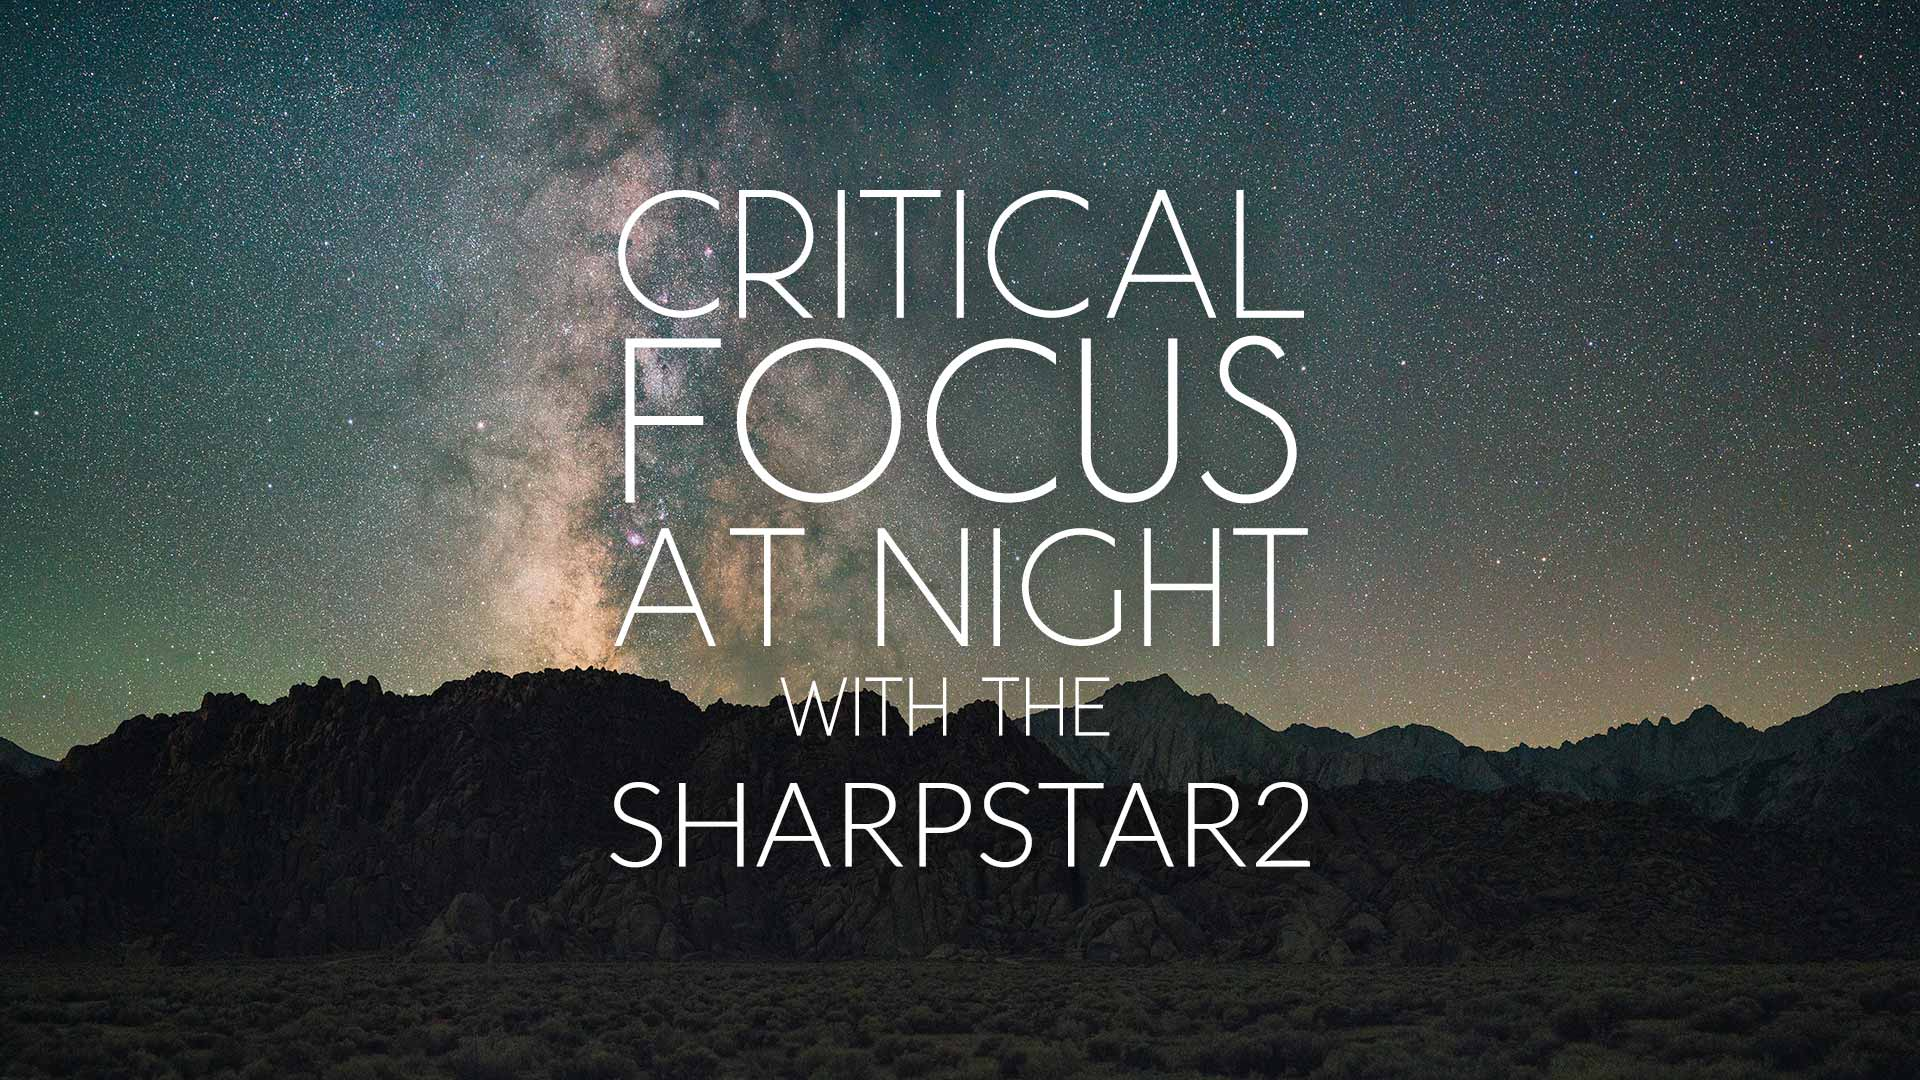 critical-focus-at-night-with-the-sharpstar2